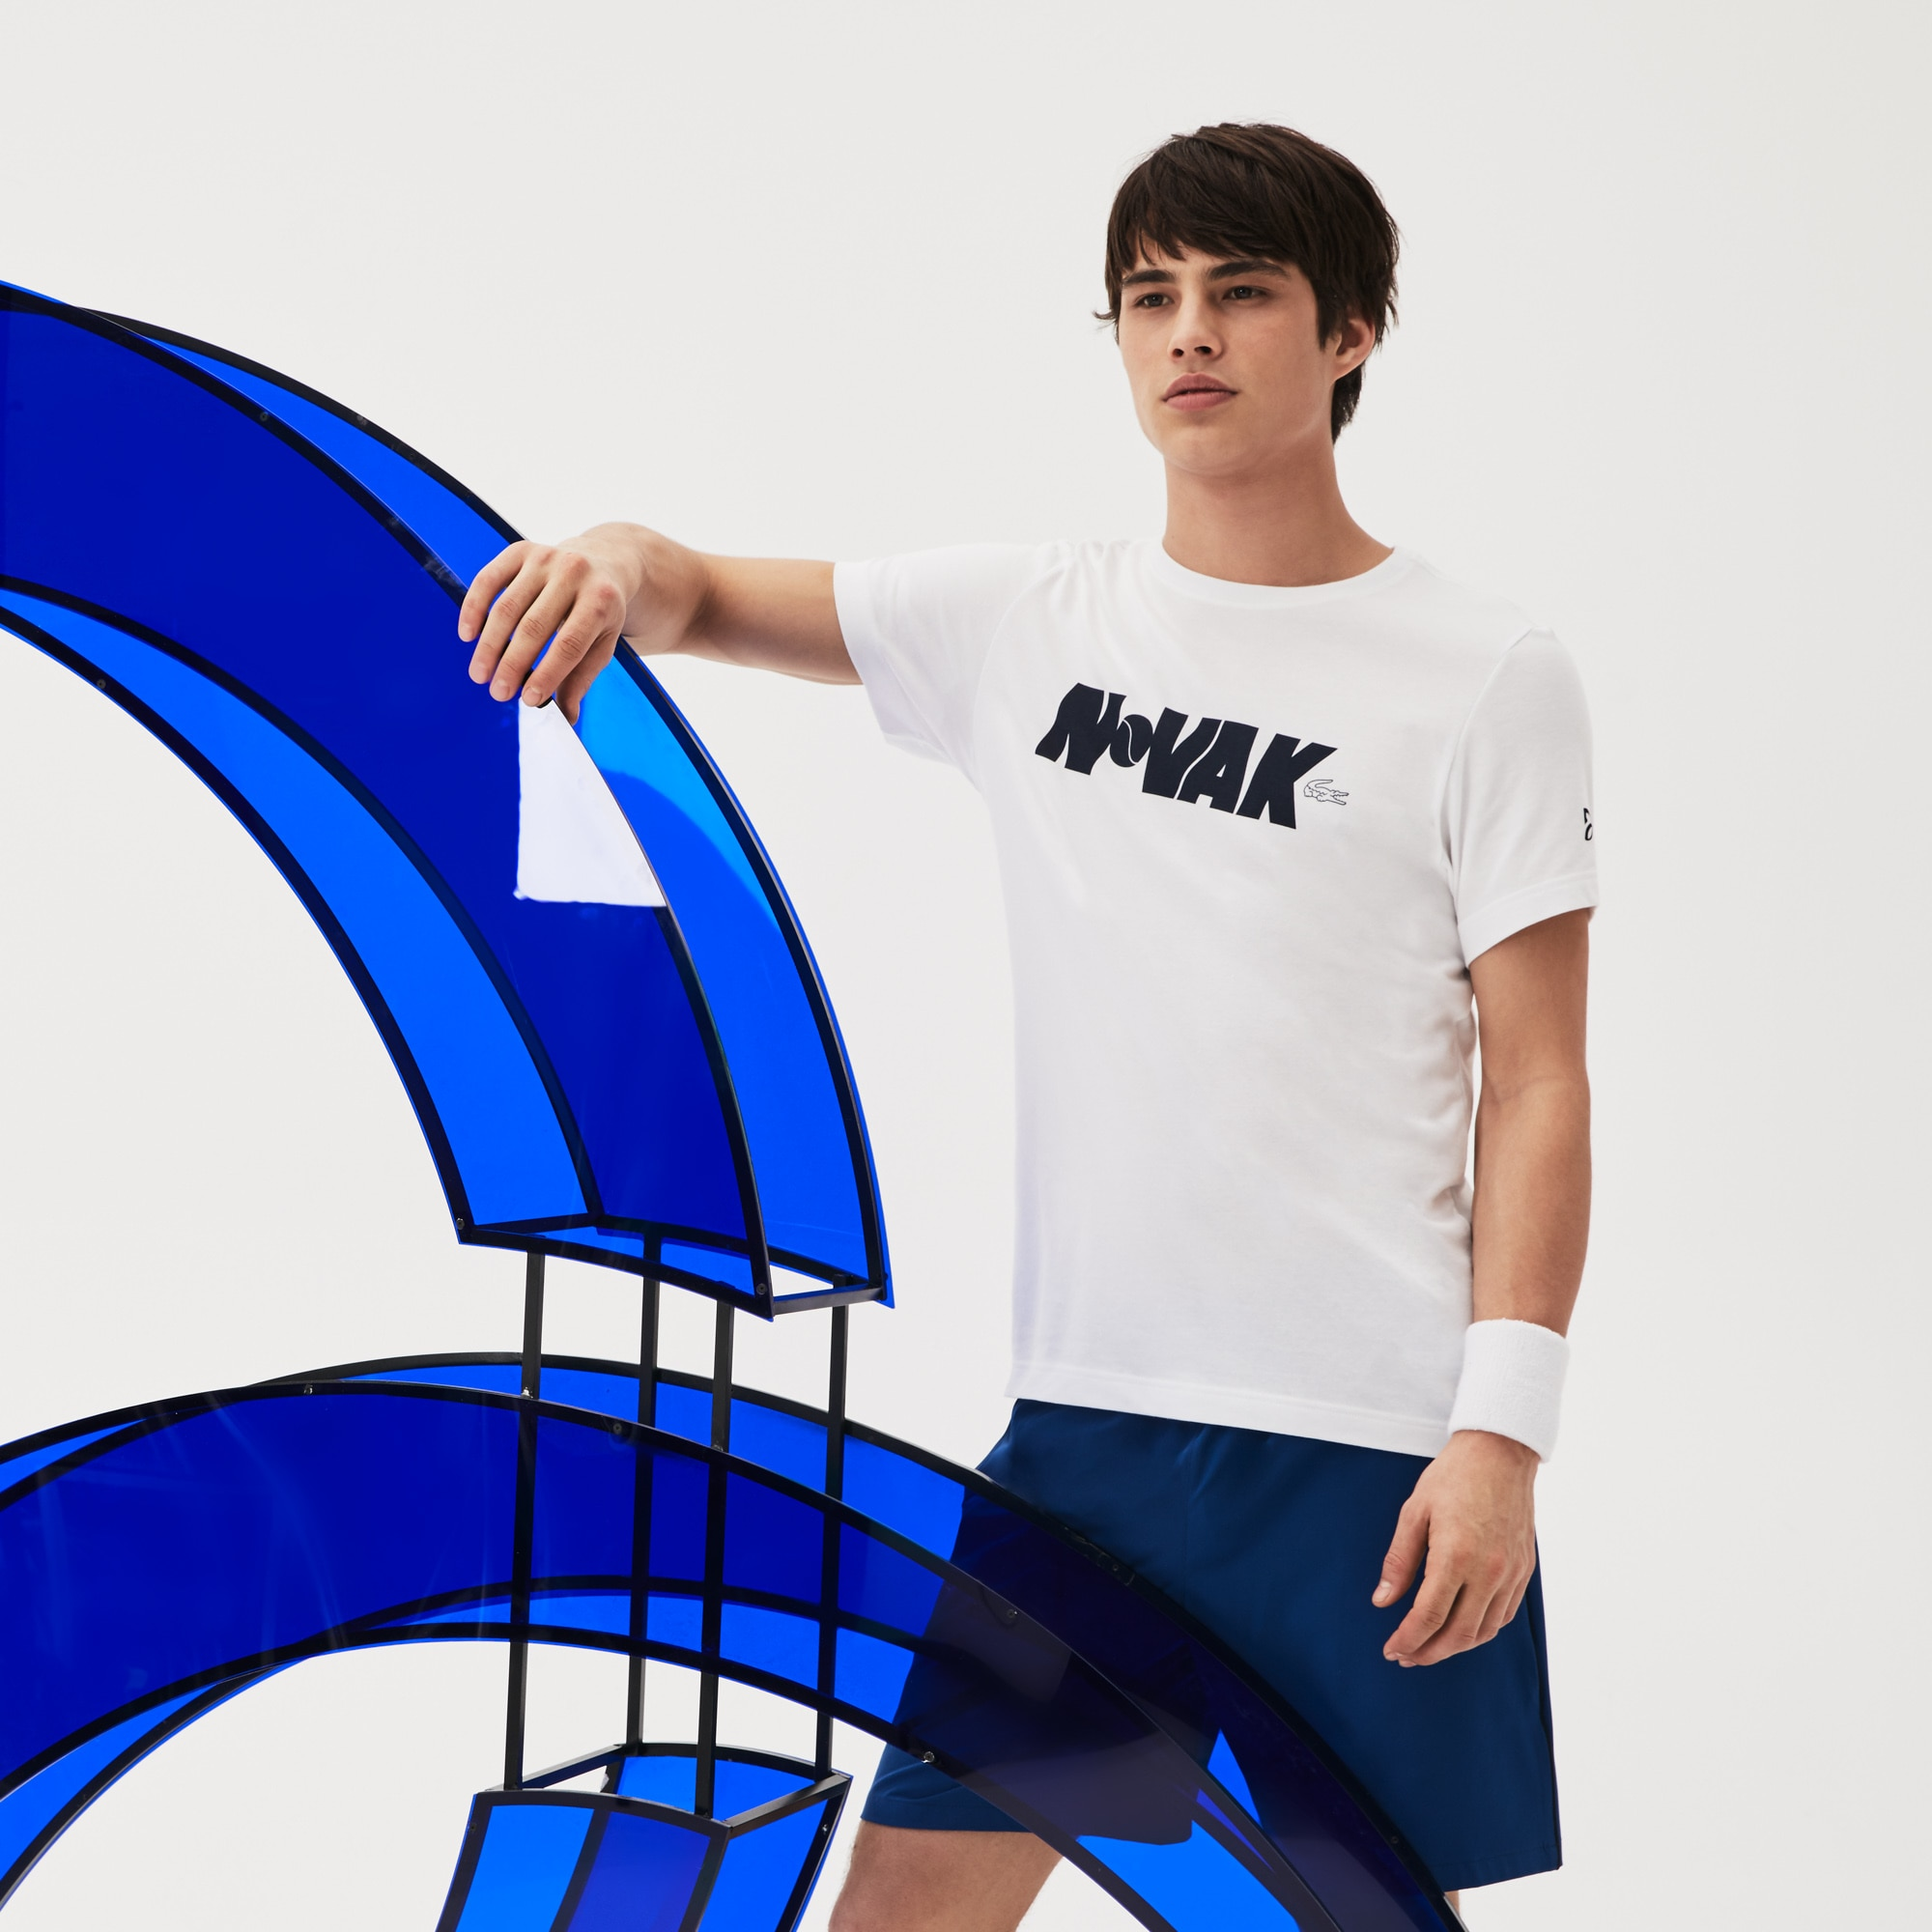 Camiseta Lacoste Sport Collection Novak Djokovic Support With Style